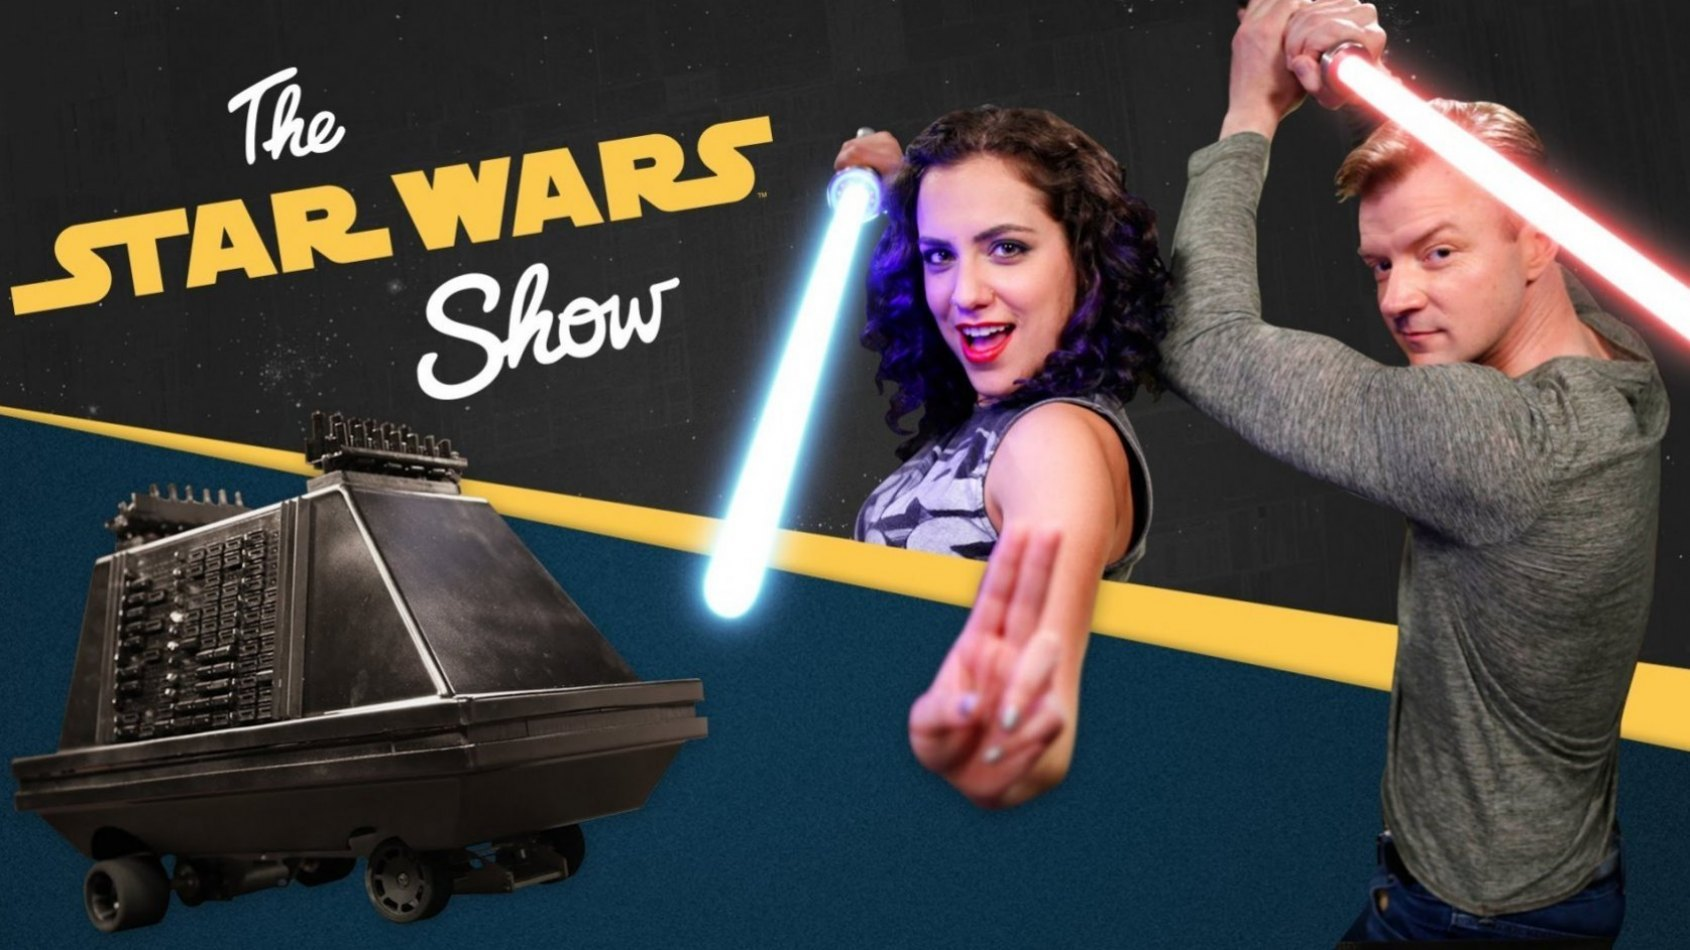 The Star Wars Show #11: Bistan et l'acteur Alden Ehrenreich